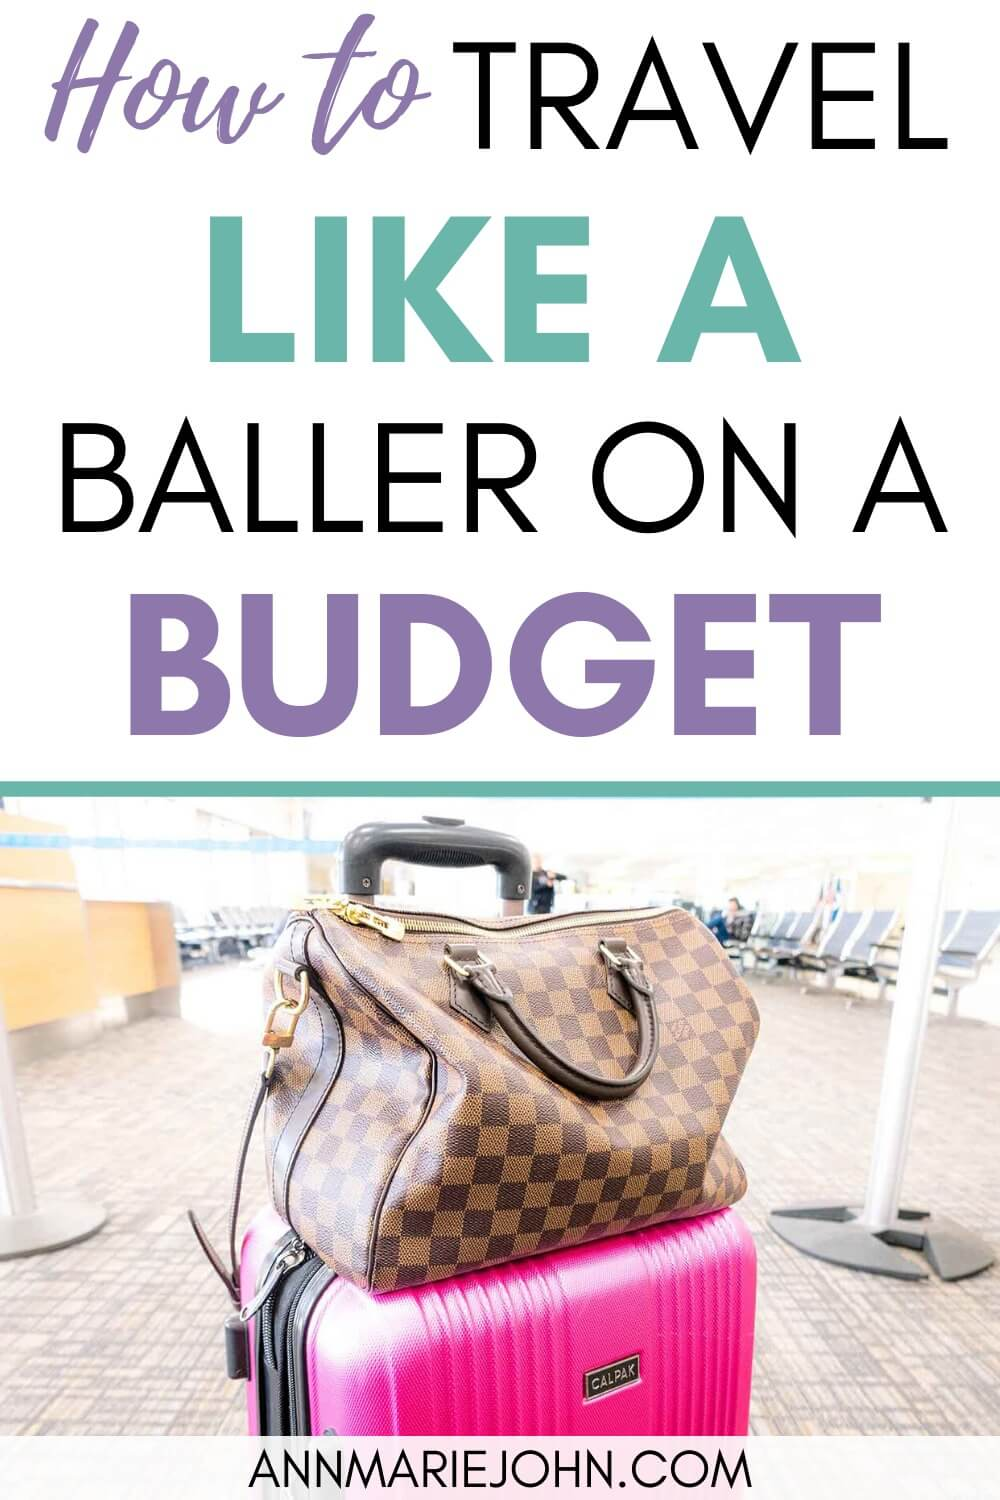 How to travel like a baller on a budget.